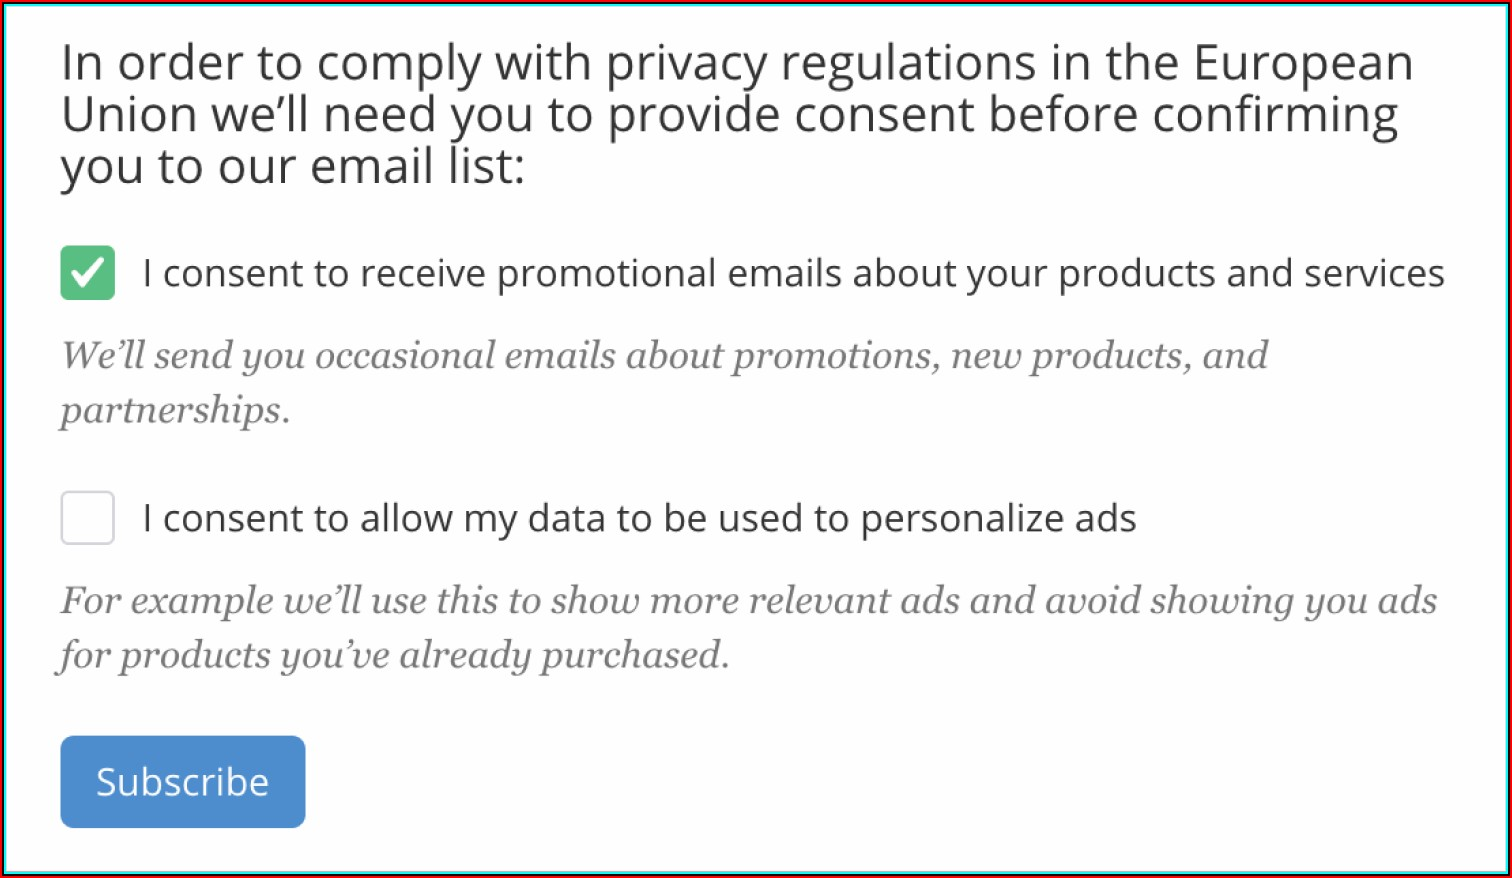 Gdpr Consent Form For Photos